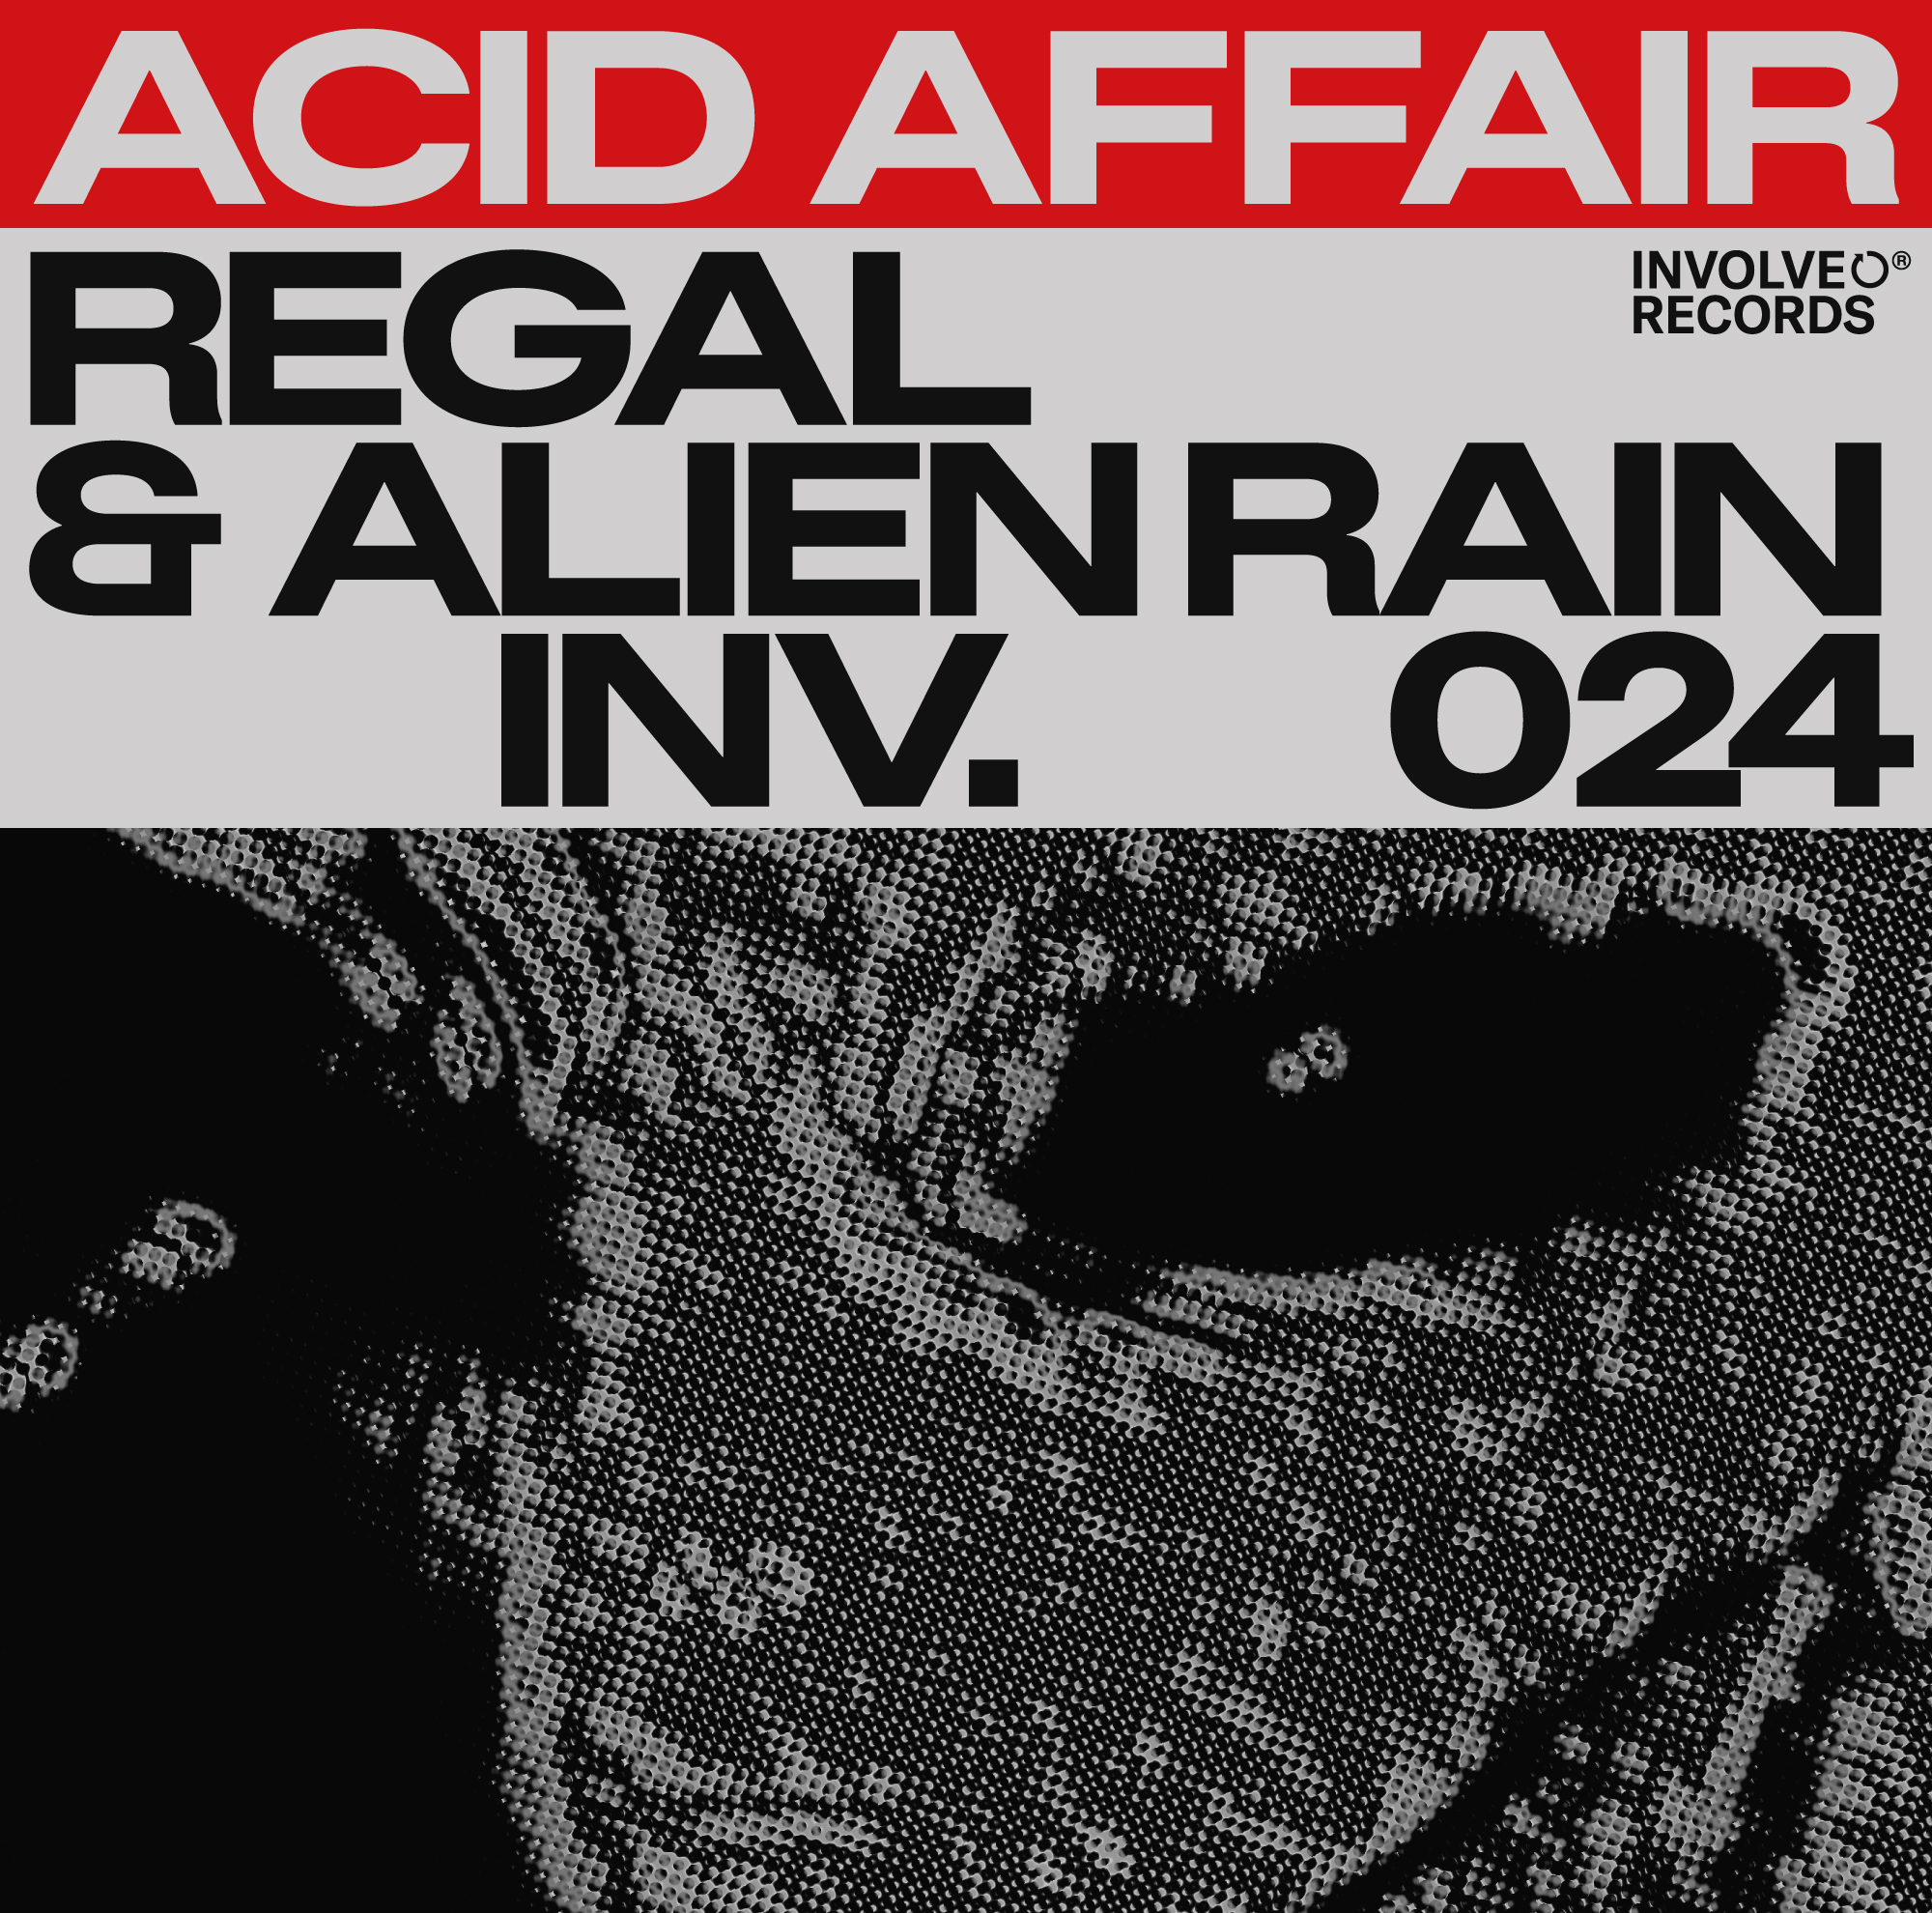 024.ACID_AFFAIR_COVER.jpg